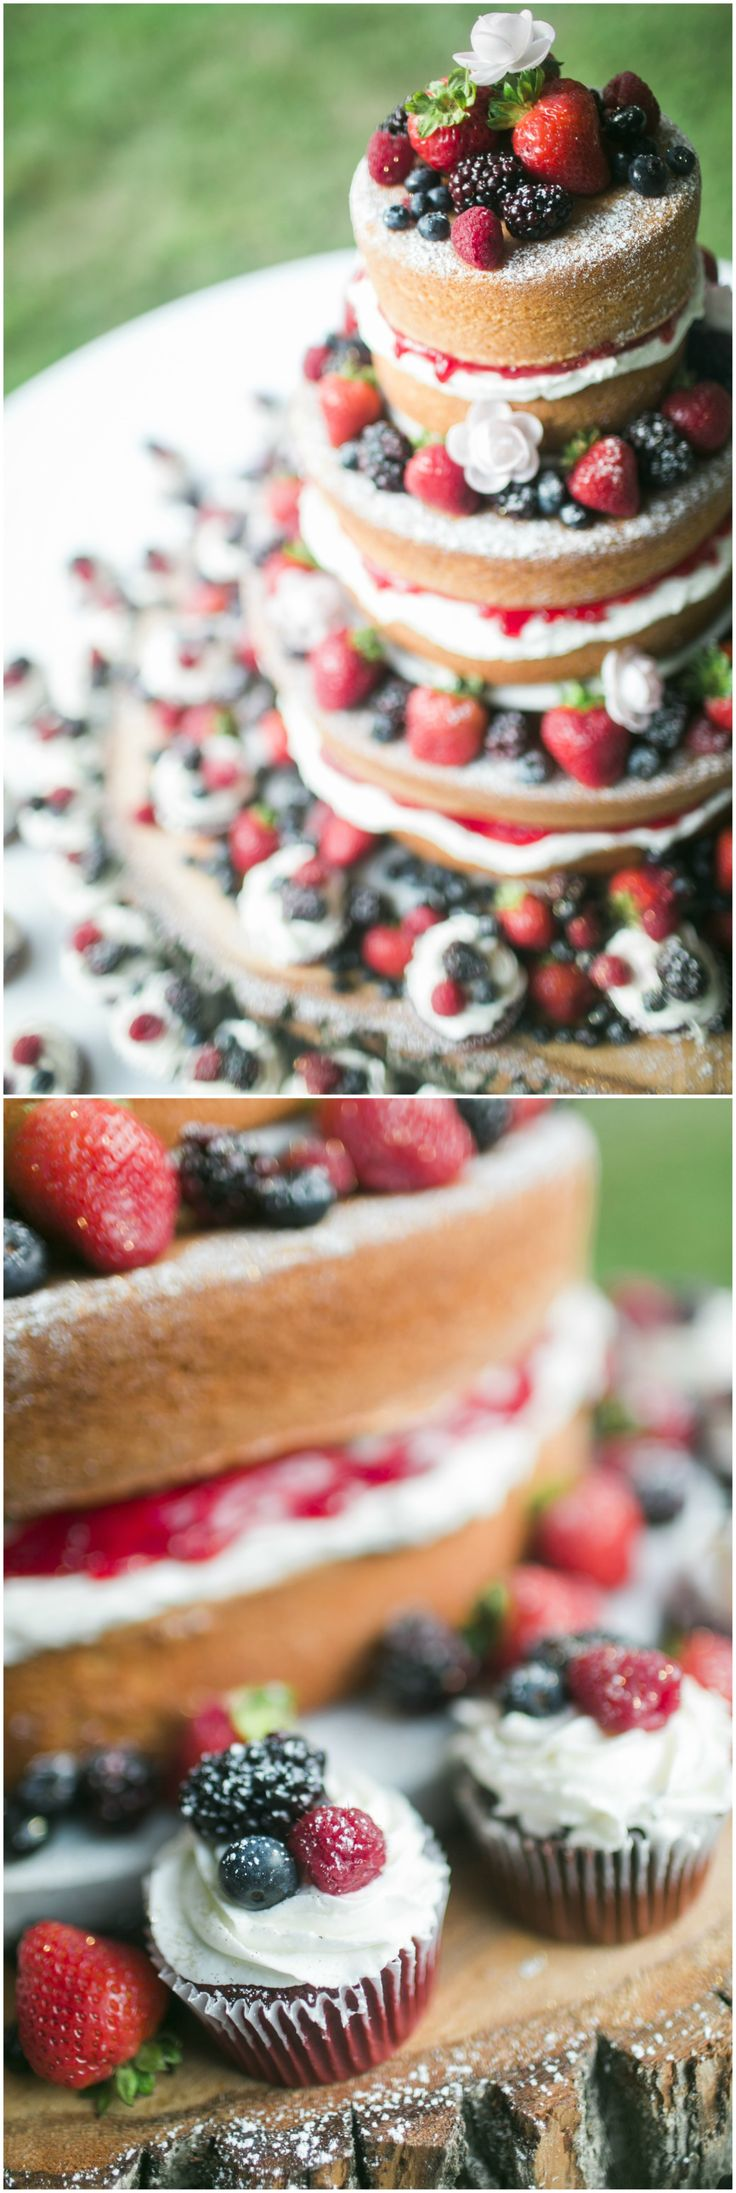 Wedding cake for a summer wedding, naked cake covered in berries, matching cupcakes, rustic cake stand // Red Aspen Photography